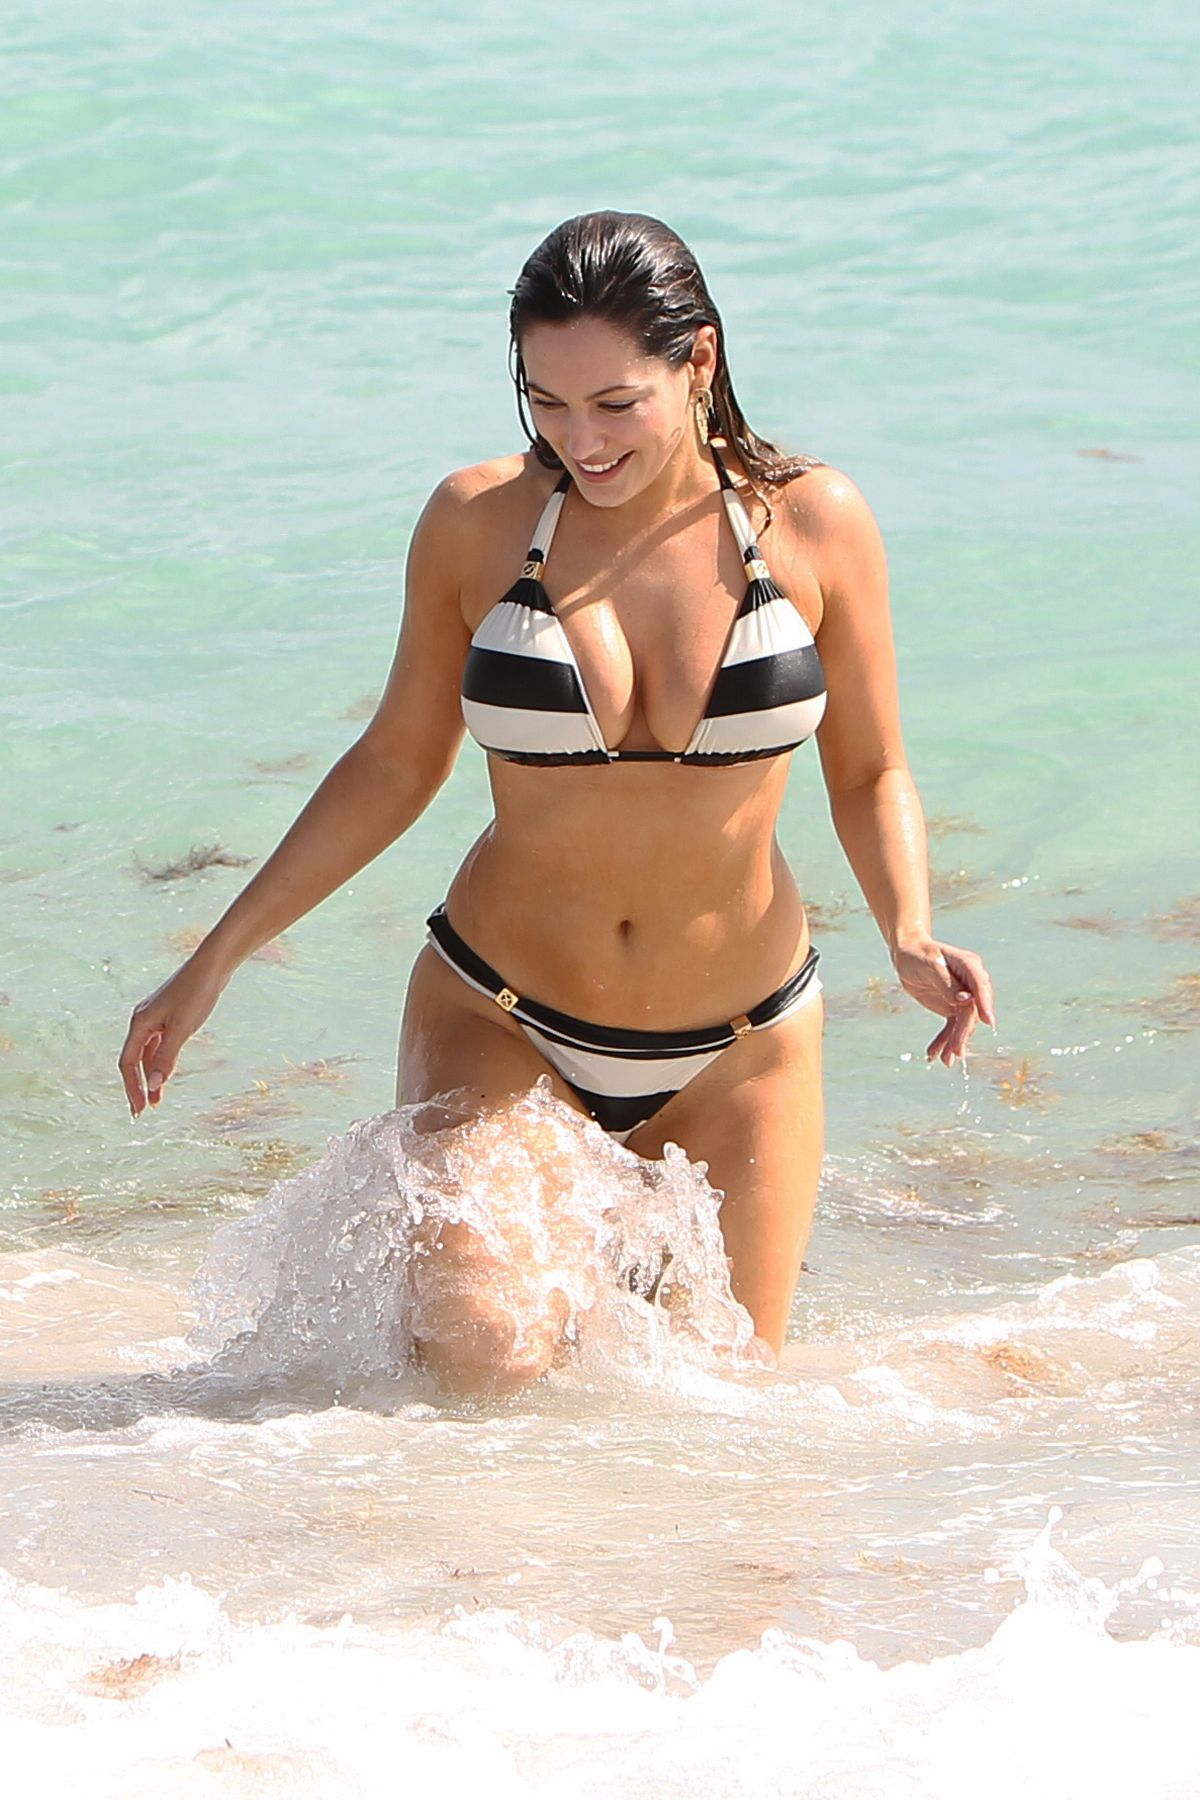 Kelly Brook in Patterned Bikini on the beach in Thailand Pic 11 of 35